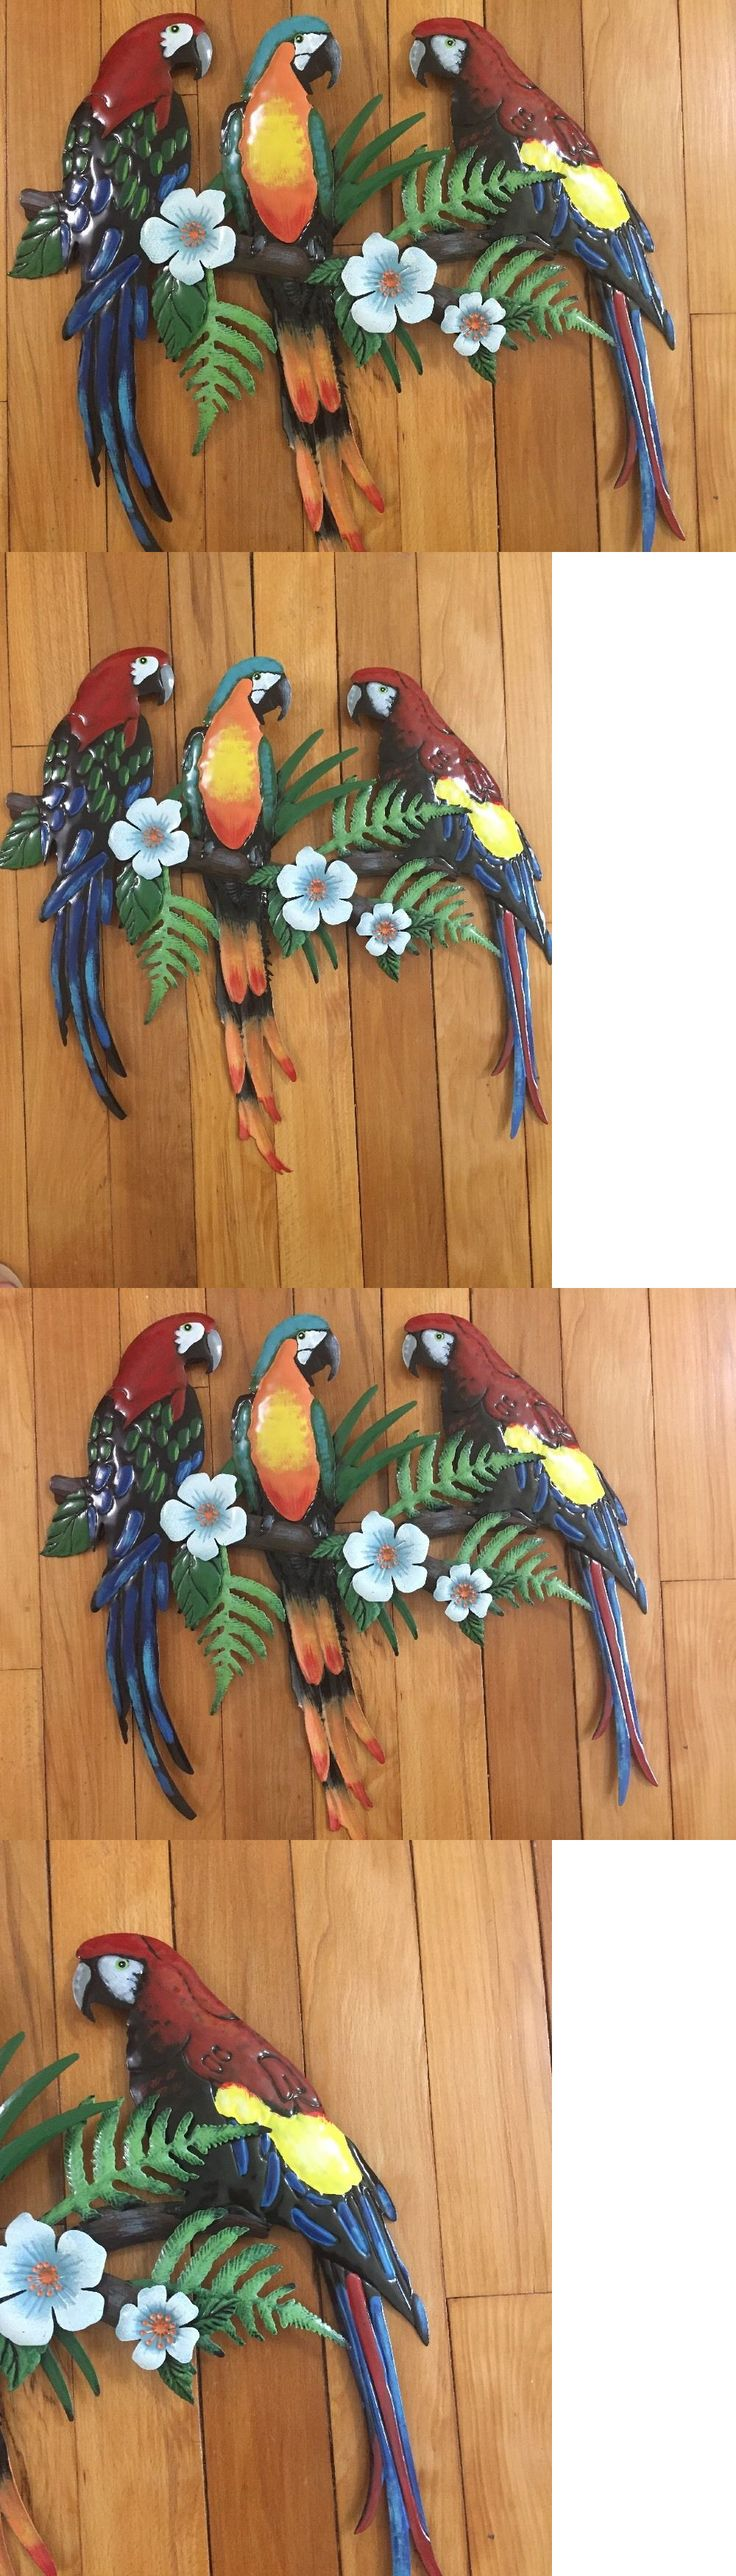 Wall Sculptures 166729: Tropical Parrot Wall Art Botanical Spring Birds Hawaiian Hibiscus Floral Decor -> BUY IT NOW ONLY: $44.99 on eBay!